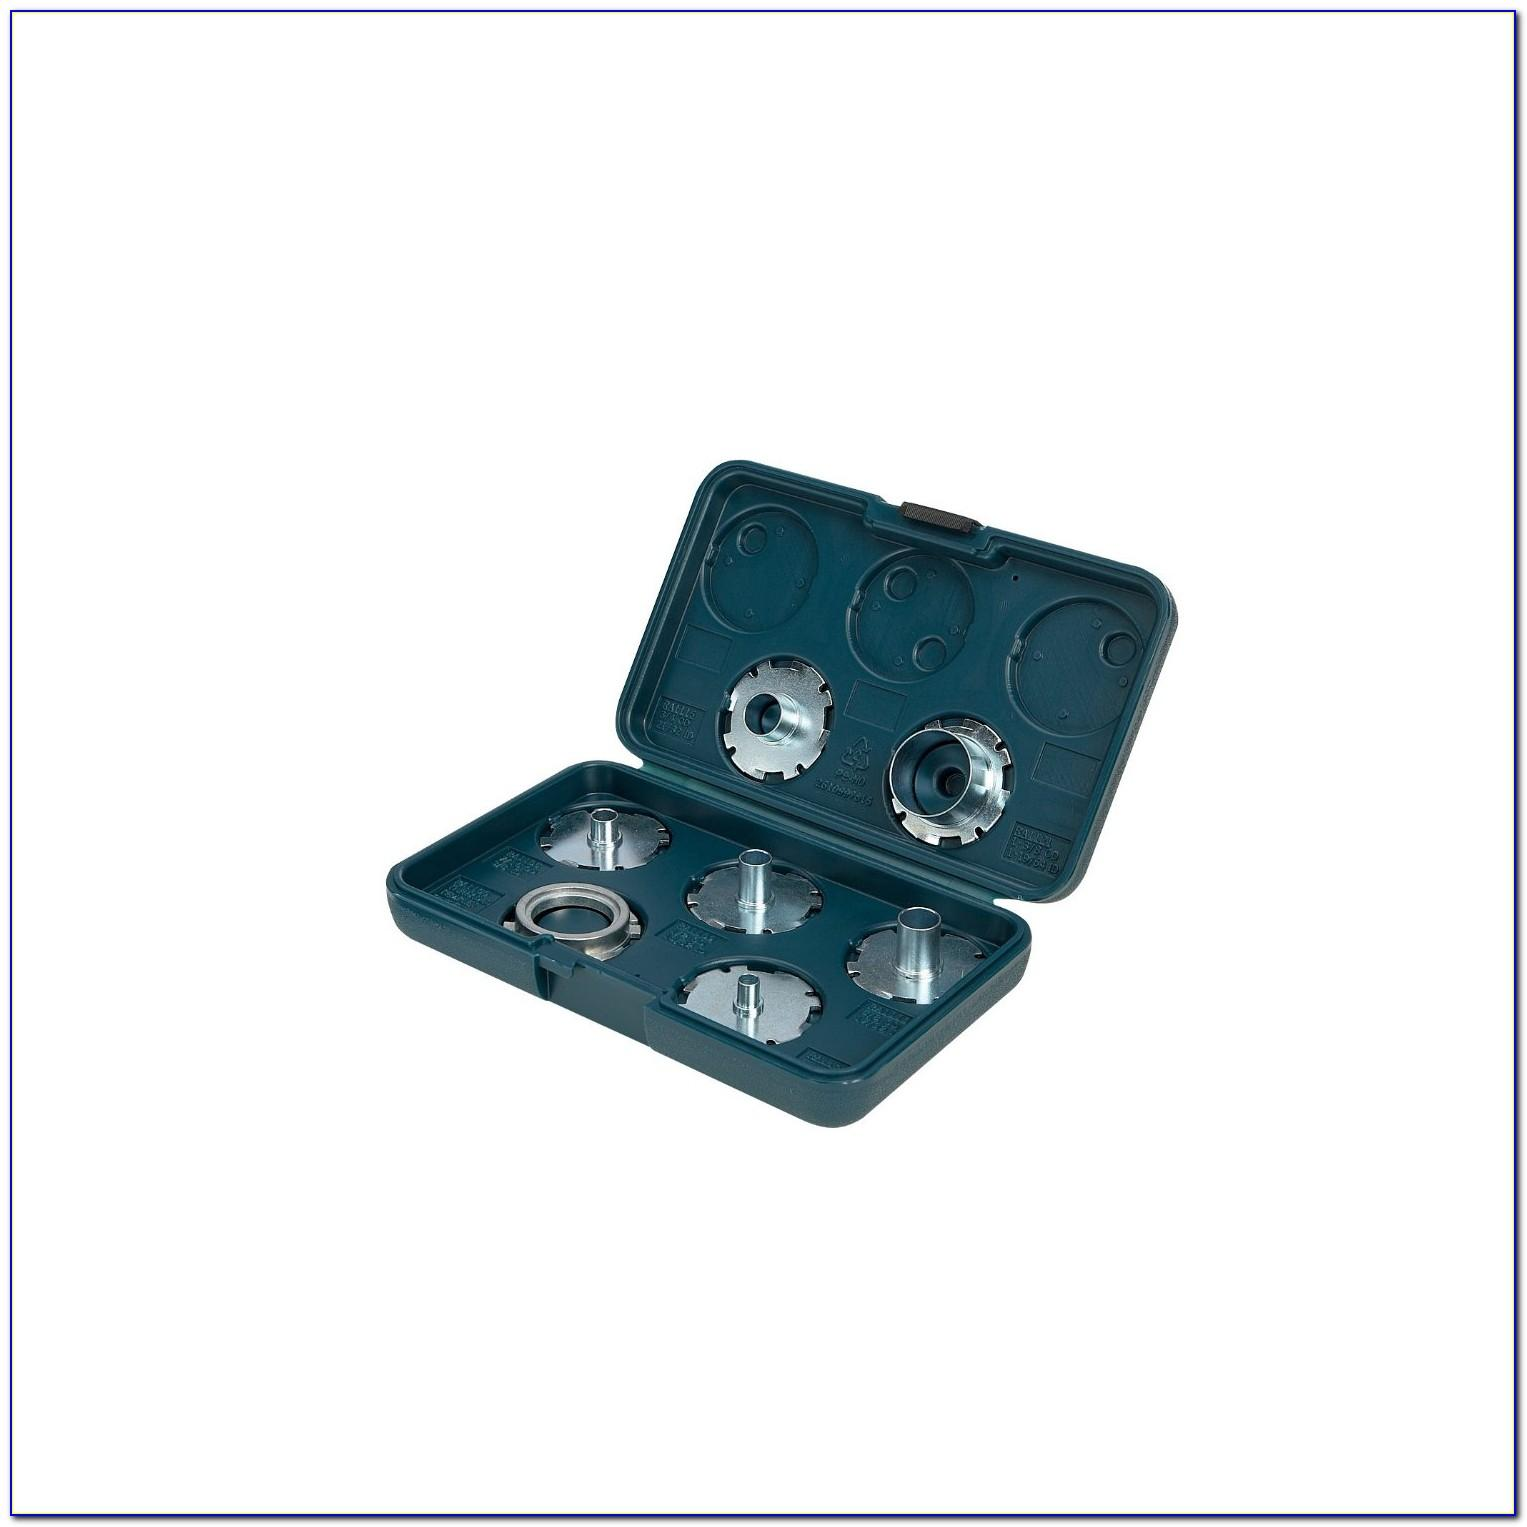 Bosch Router Template Guide Kit 8 Piece